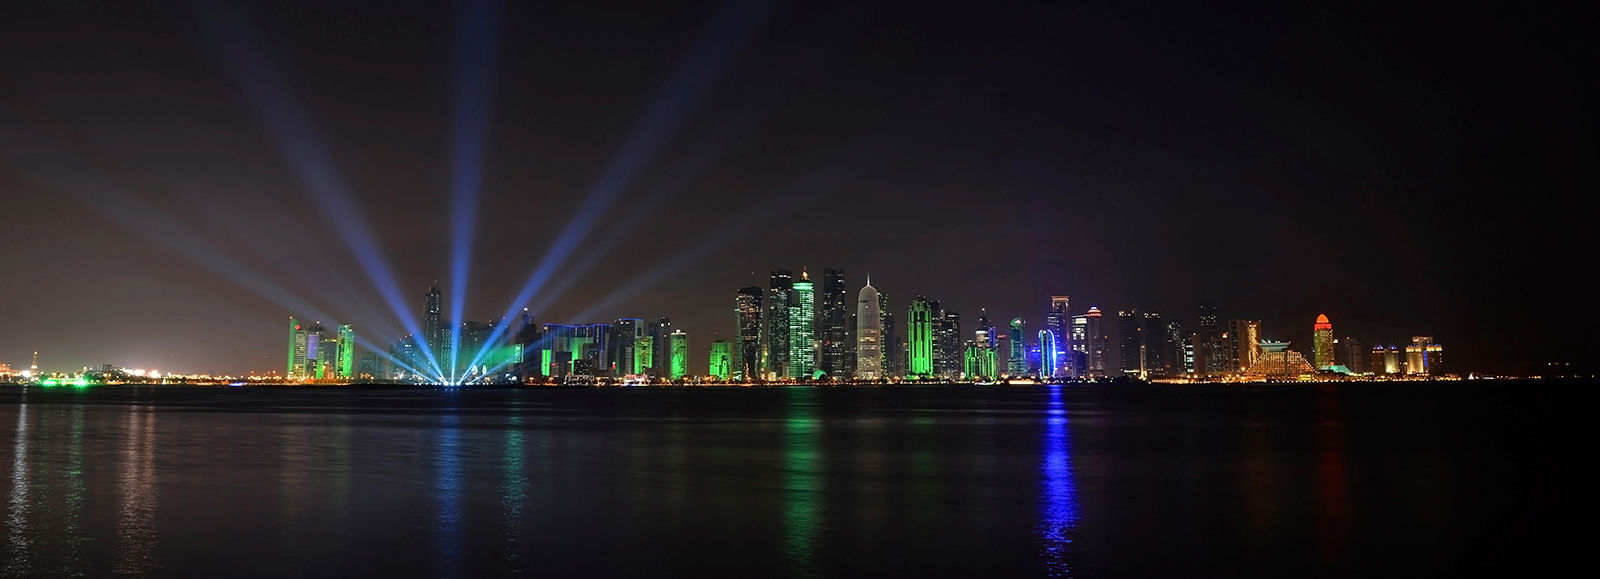 The Doha skyline at night